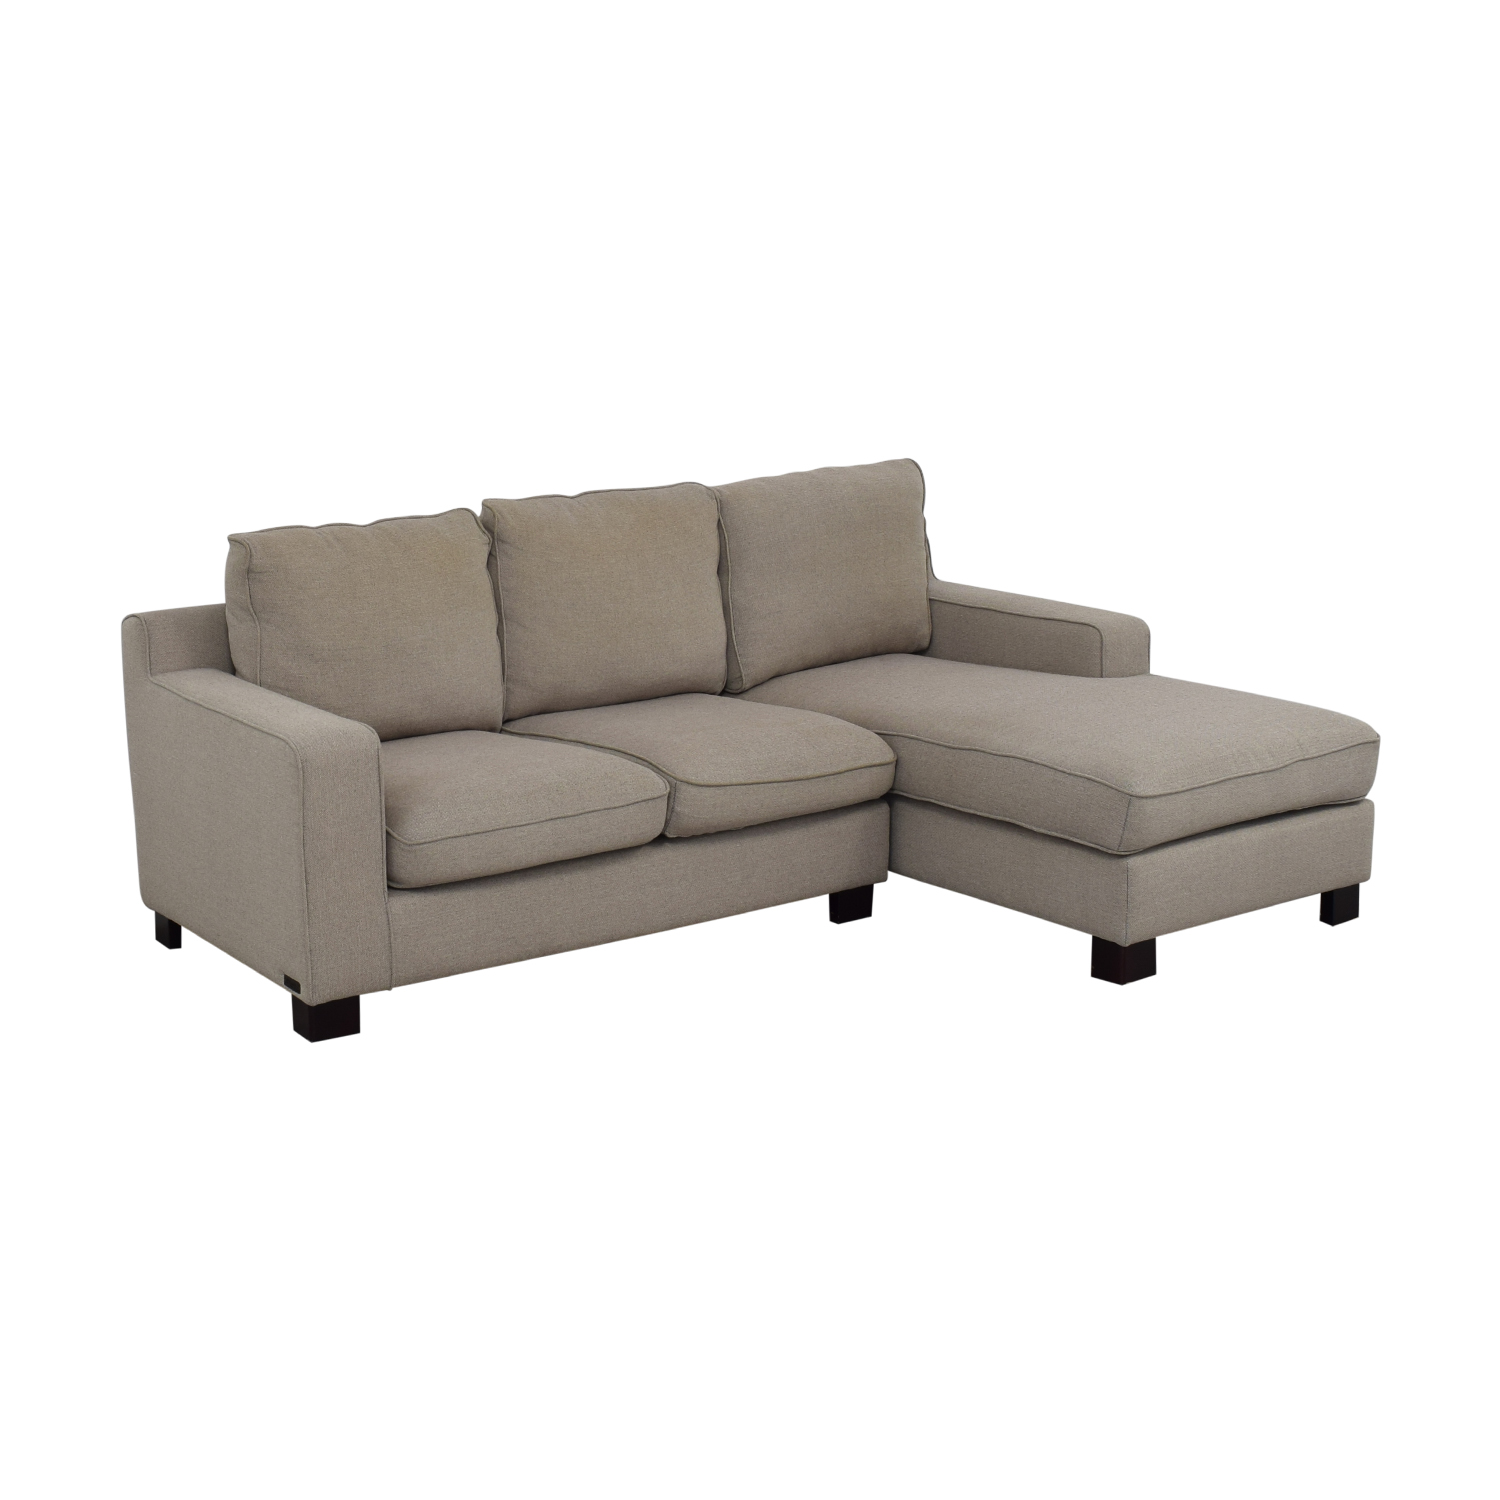 buy Abbyson Beverly Sectional Sofa Abbyson Sofas